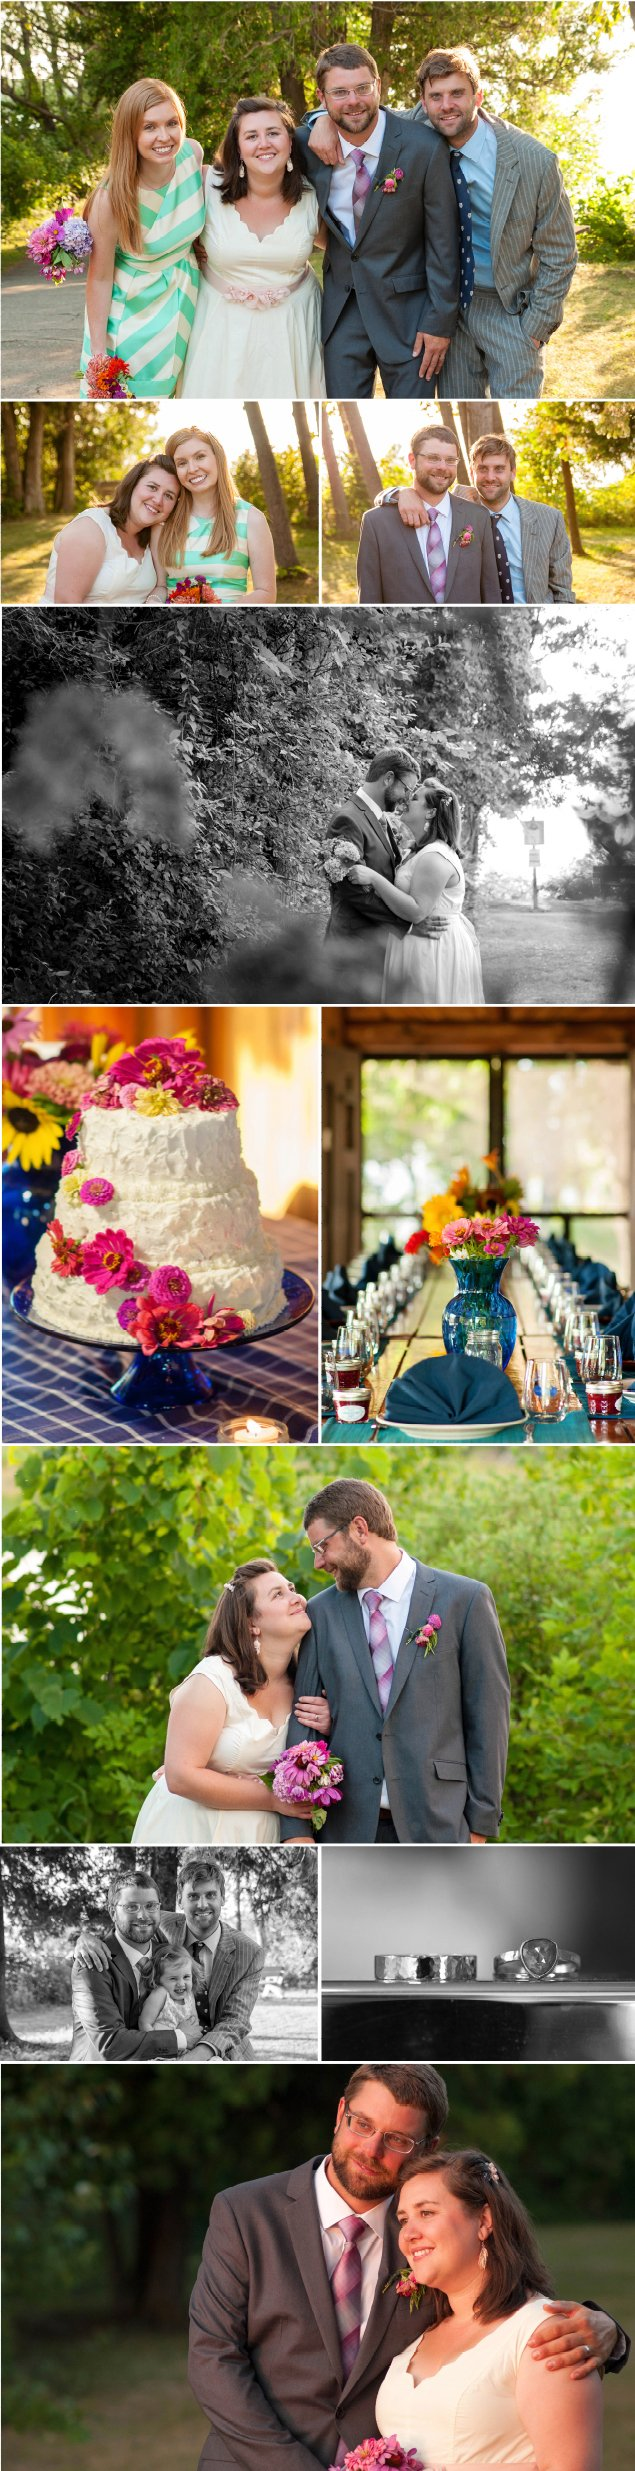 Door_County_Peninsula_Park_Outdoor_Wedding2